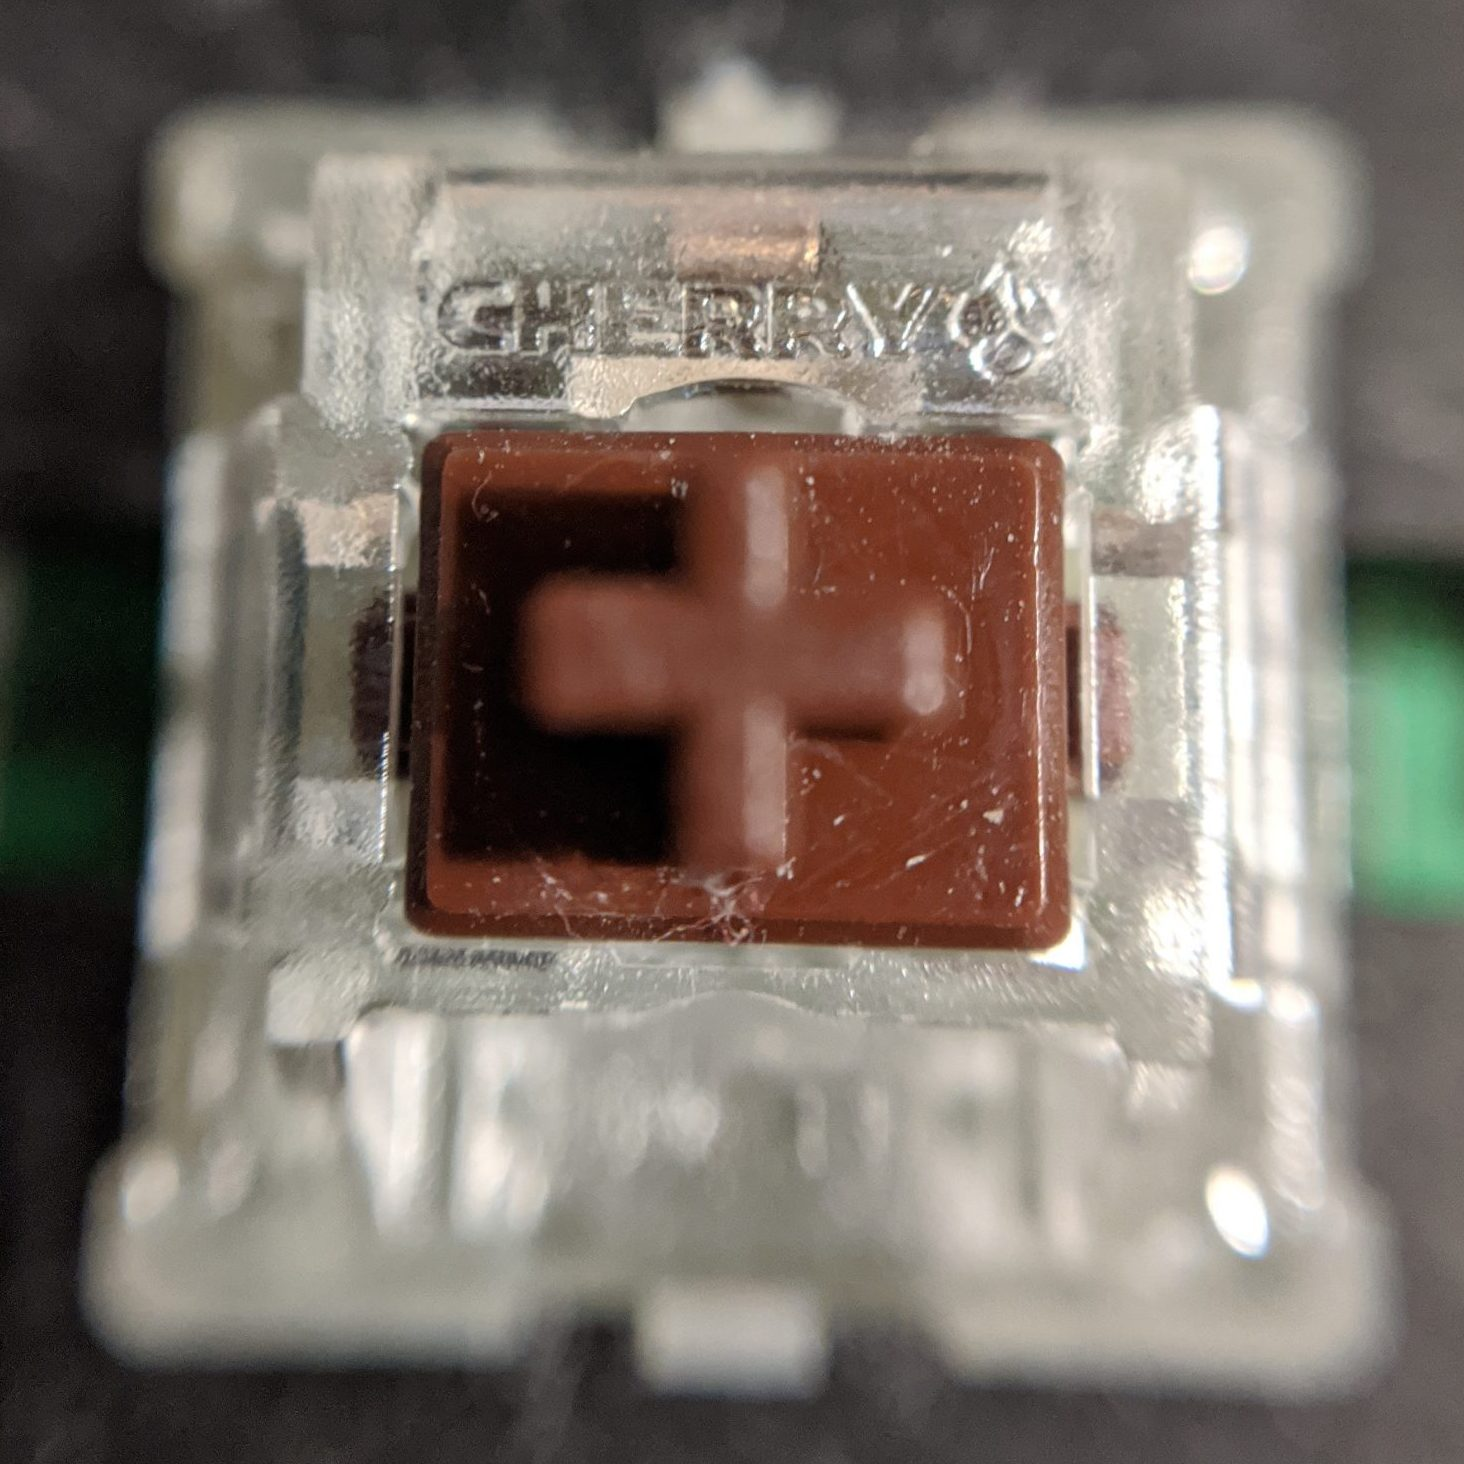 Cherry MX Brown switch macro shot